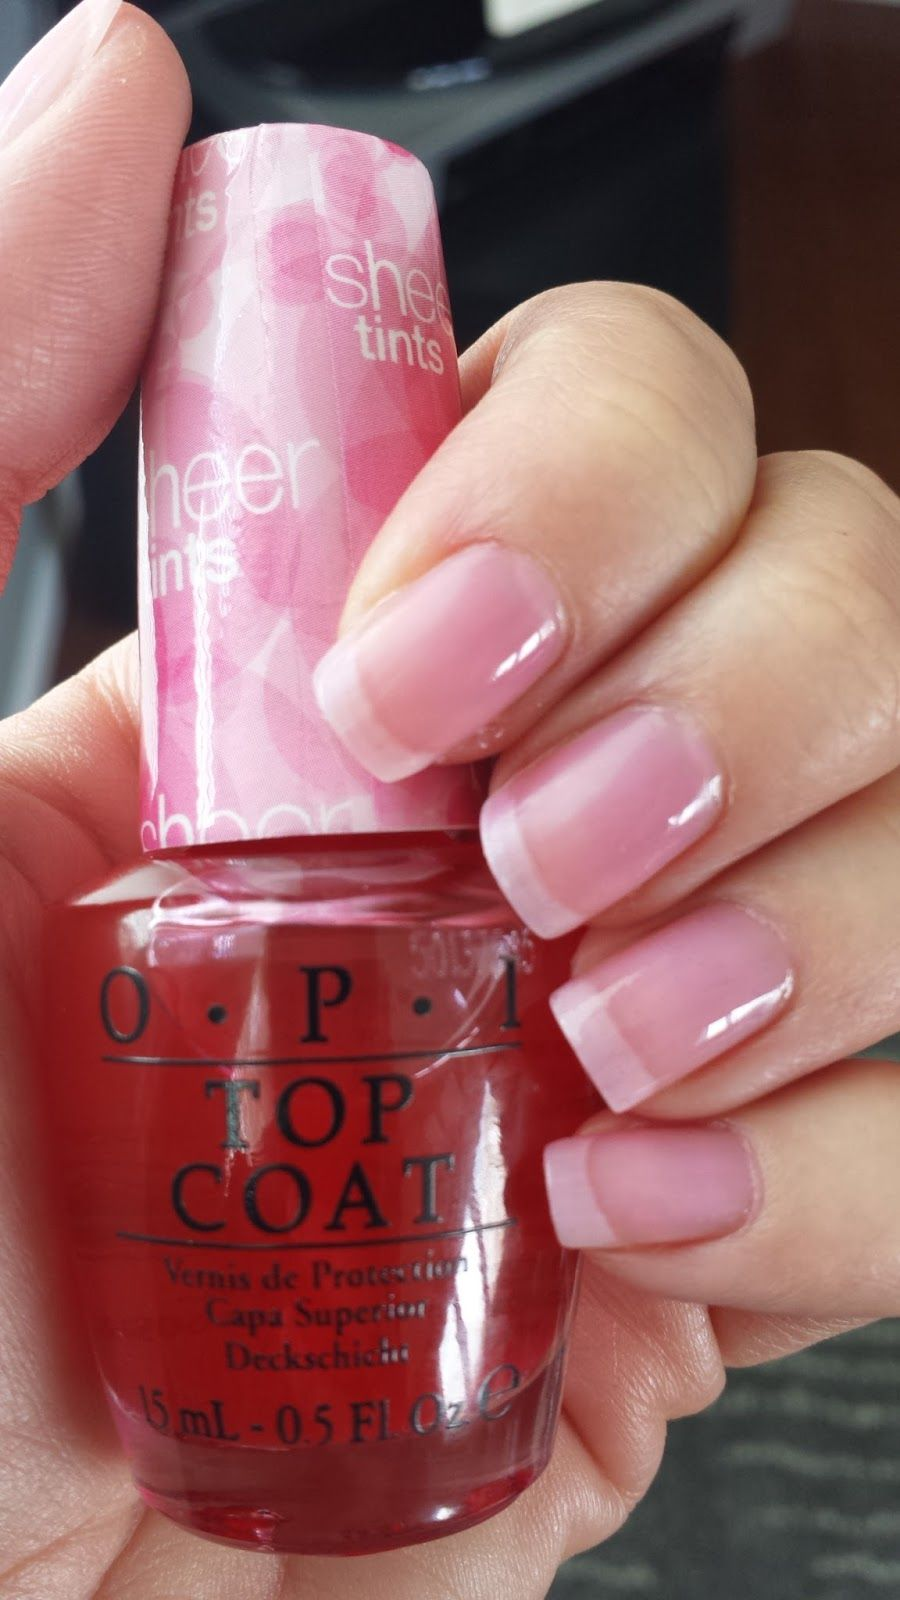 Opi Sheer Tint In Be Magentale With Me Pink Nail Polish